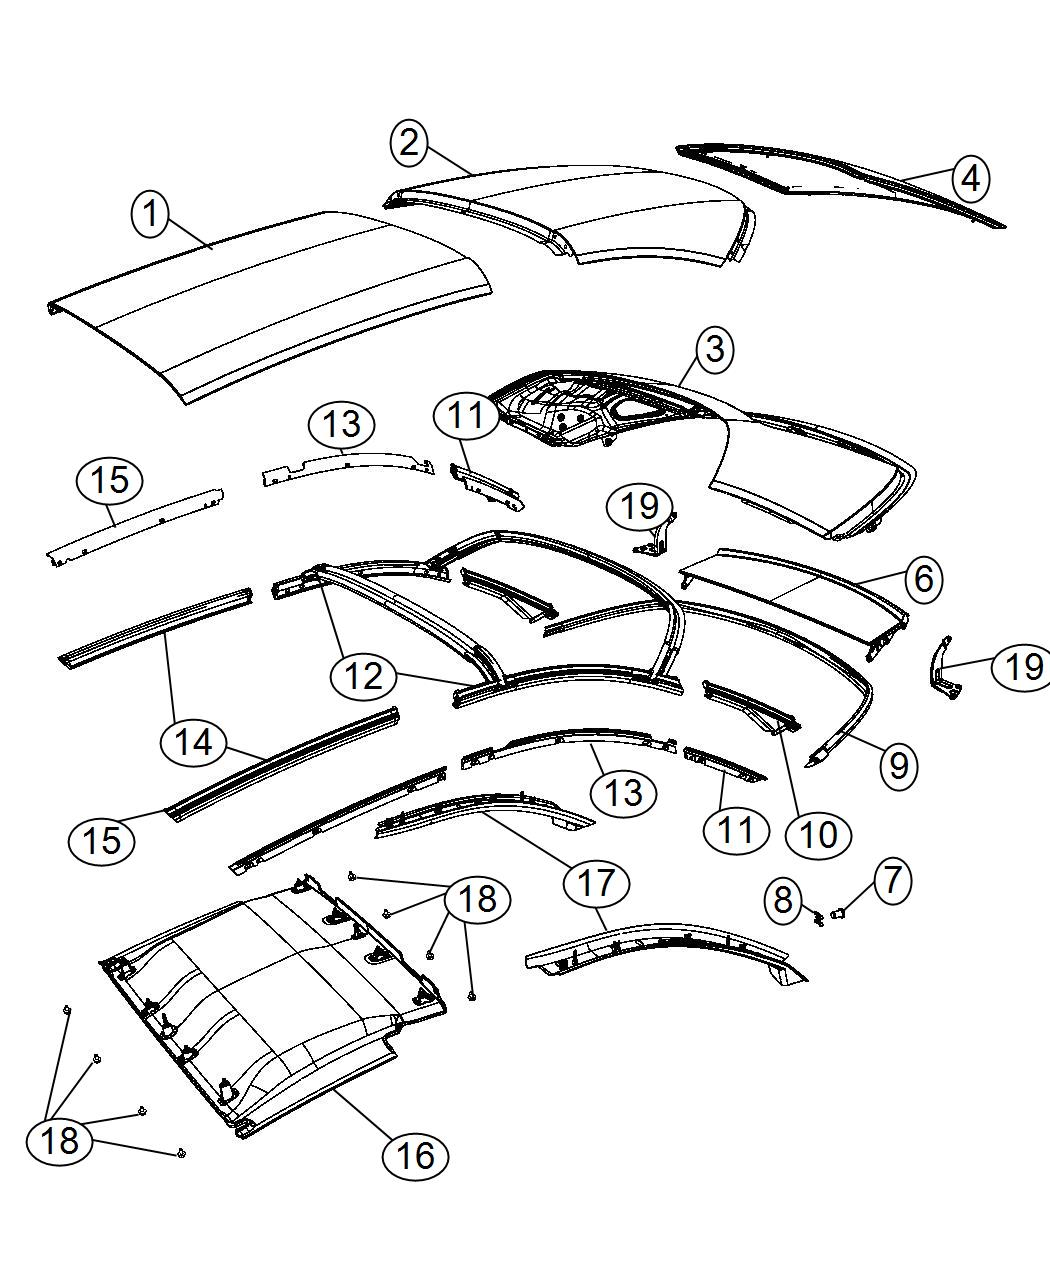 Chrysler 200 Panel Folding Top After 1 25 08 Vro